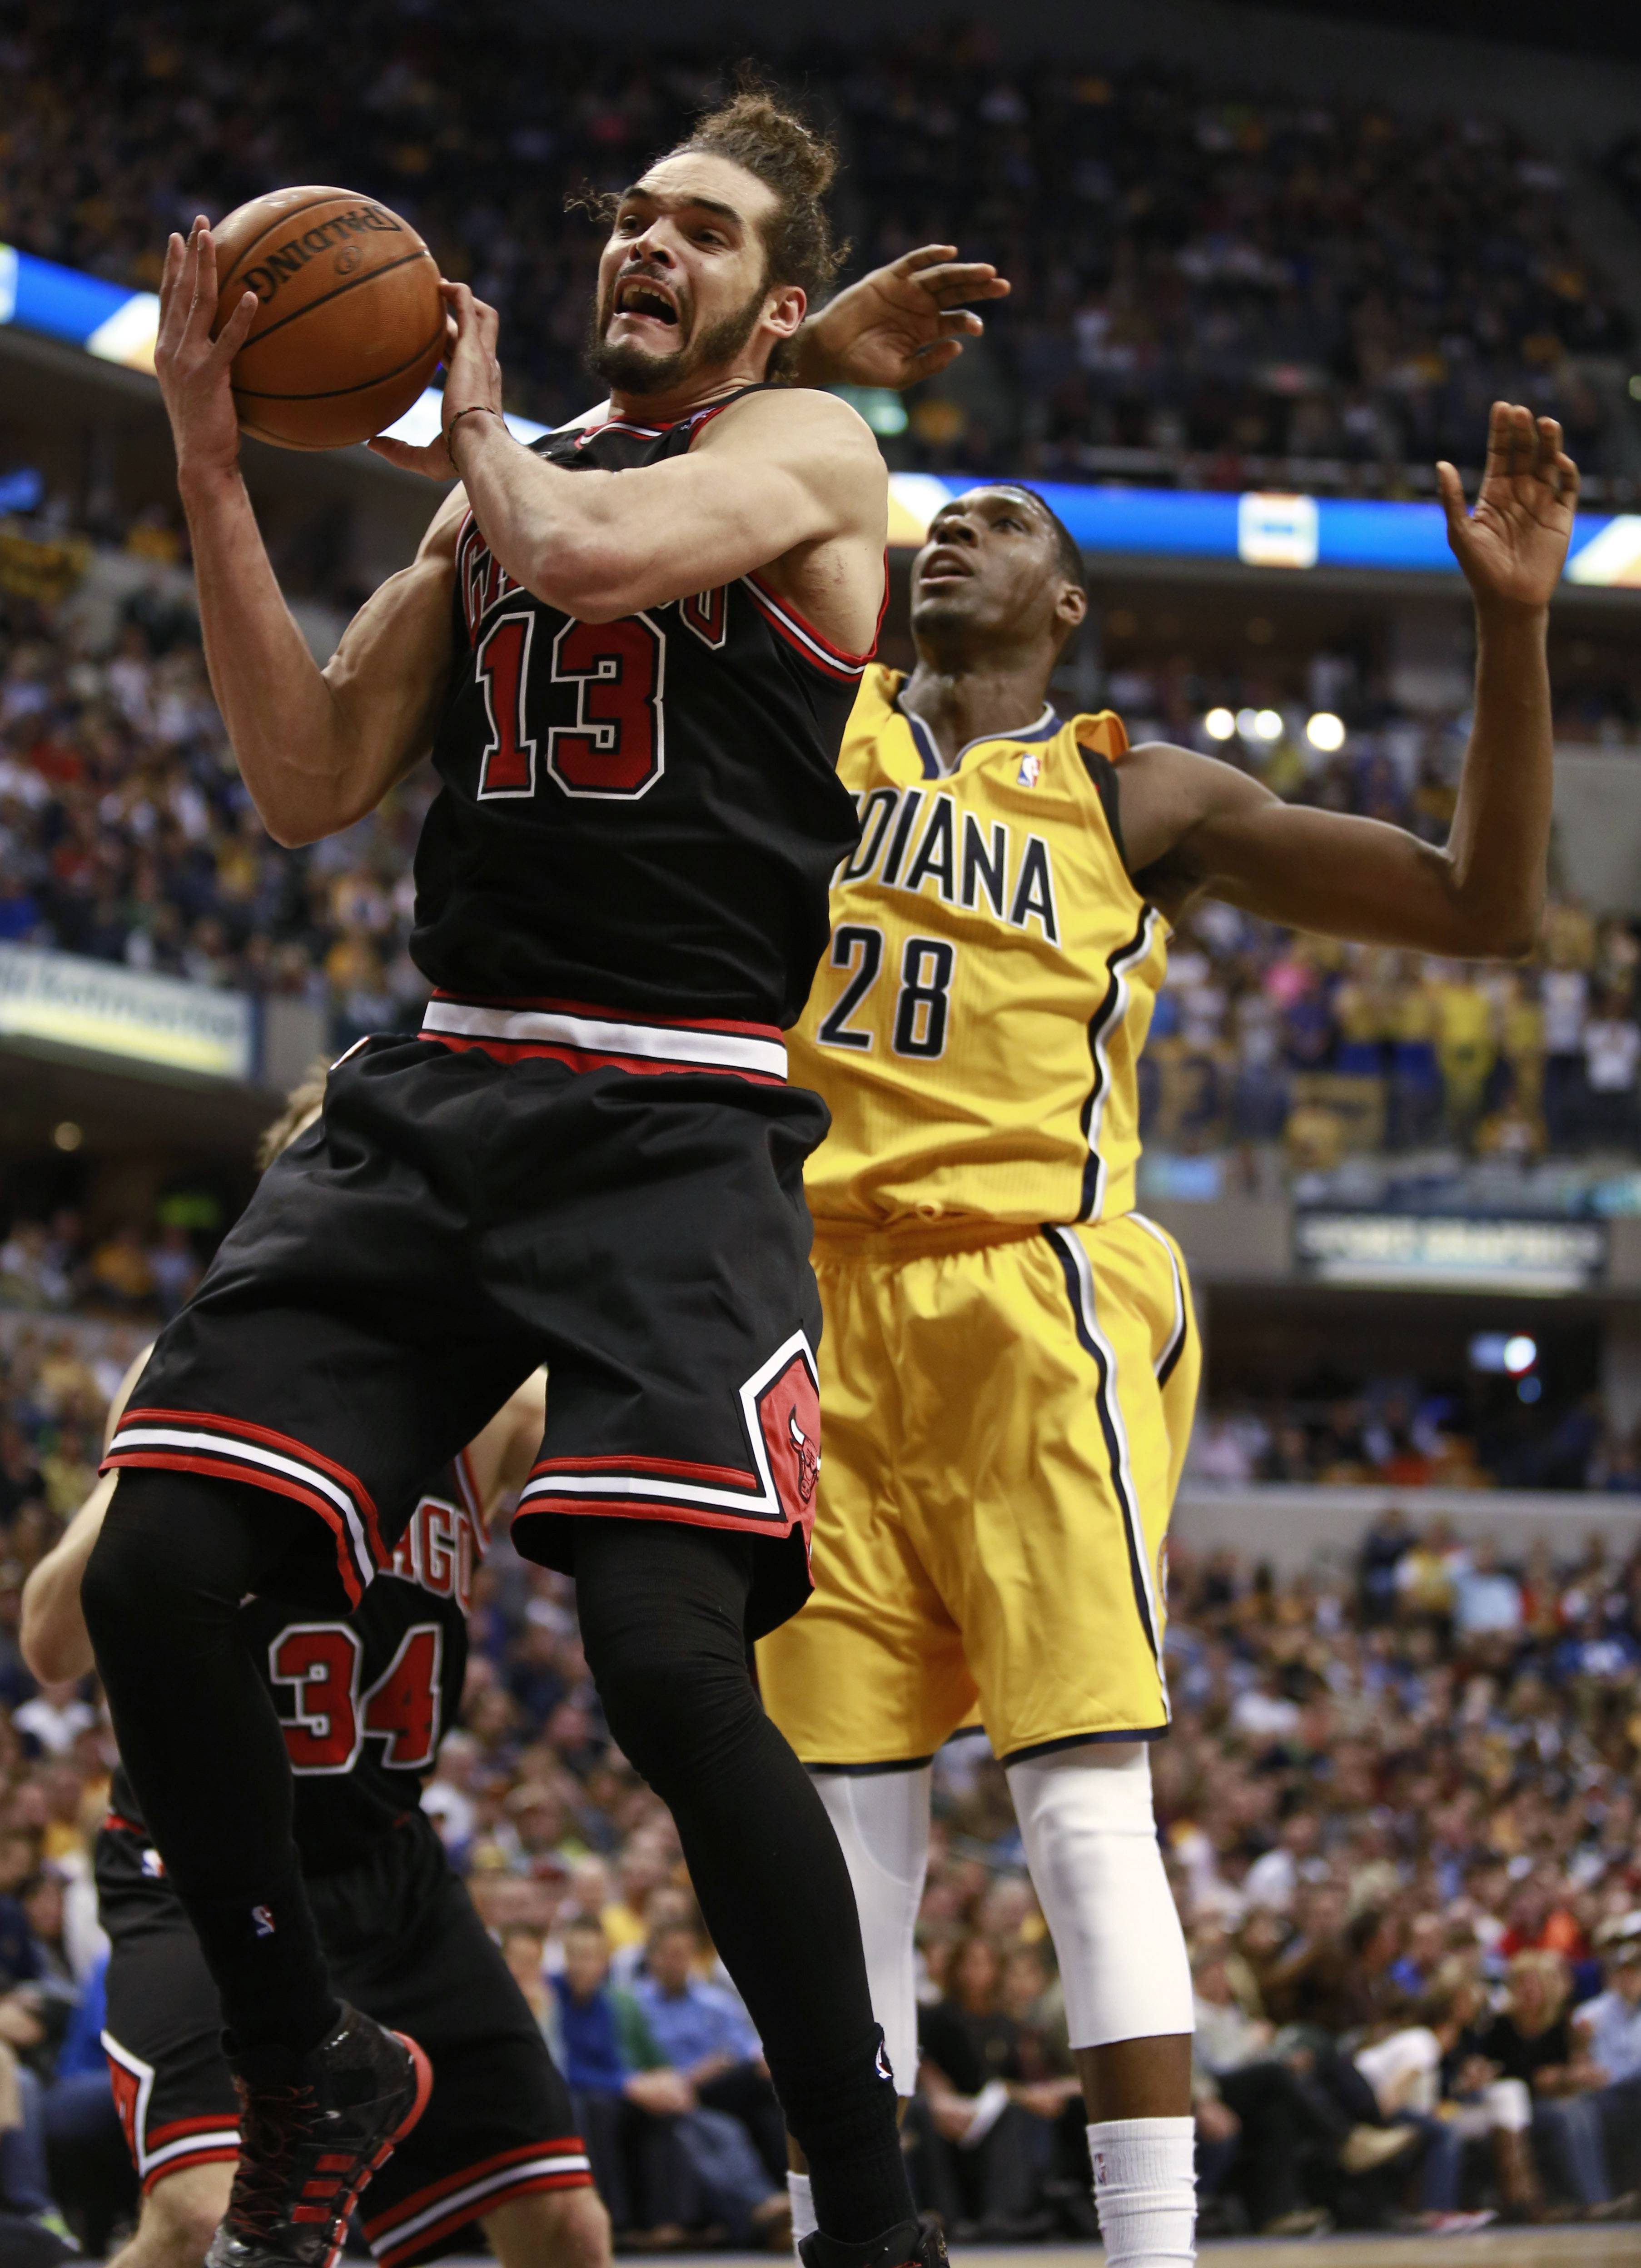 Chicago Bulls center Joakim Noah, left, grabs a rebound in front of Indiana Pacers center Ian Mahinmi in the second half of an NBA basketball game in Indianapolis, Friday, March 21, 2014. Indiana won 91-79.